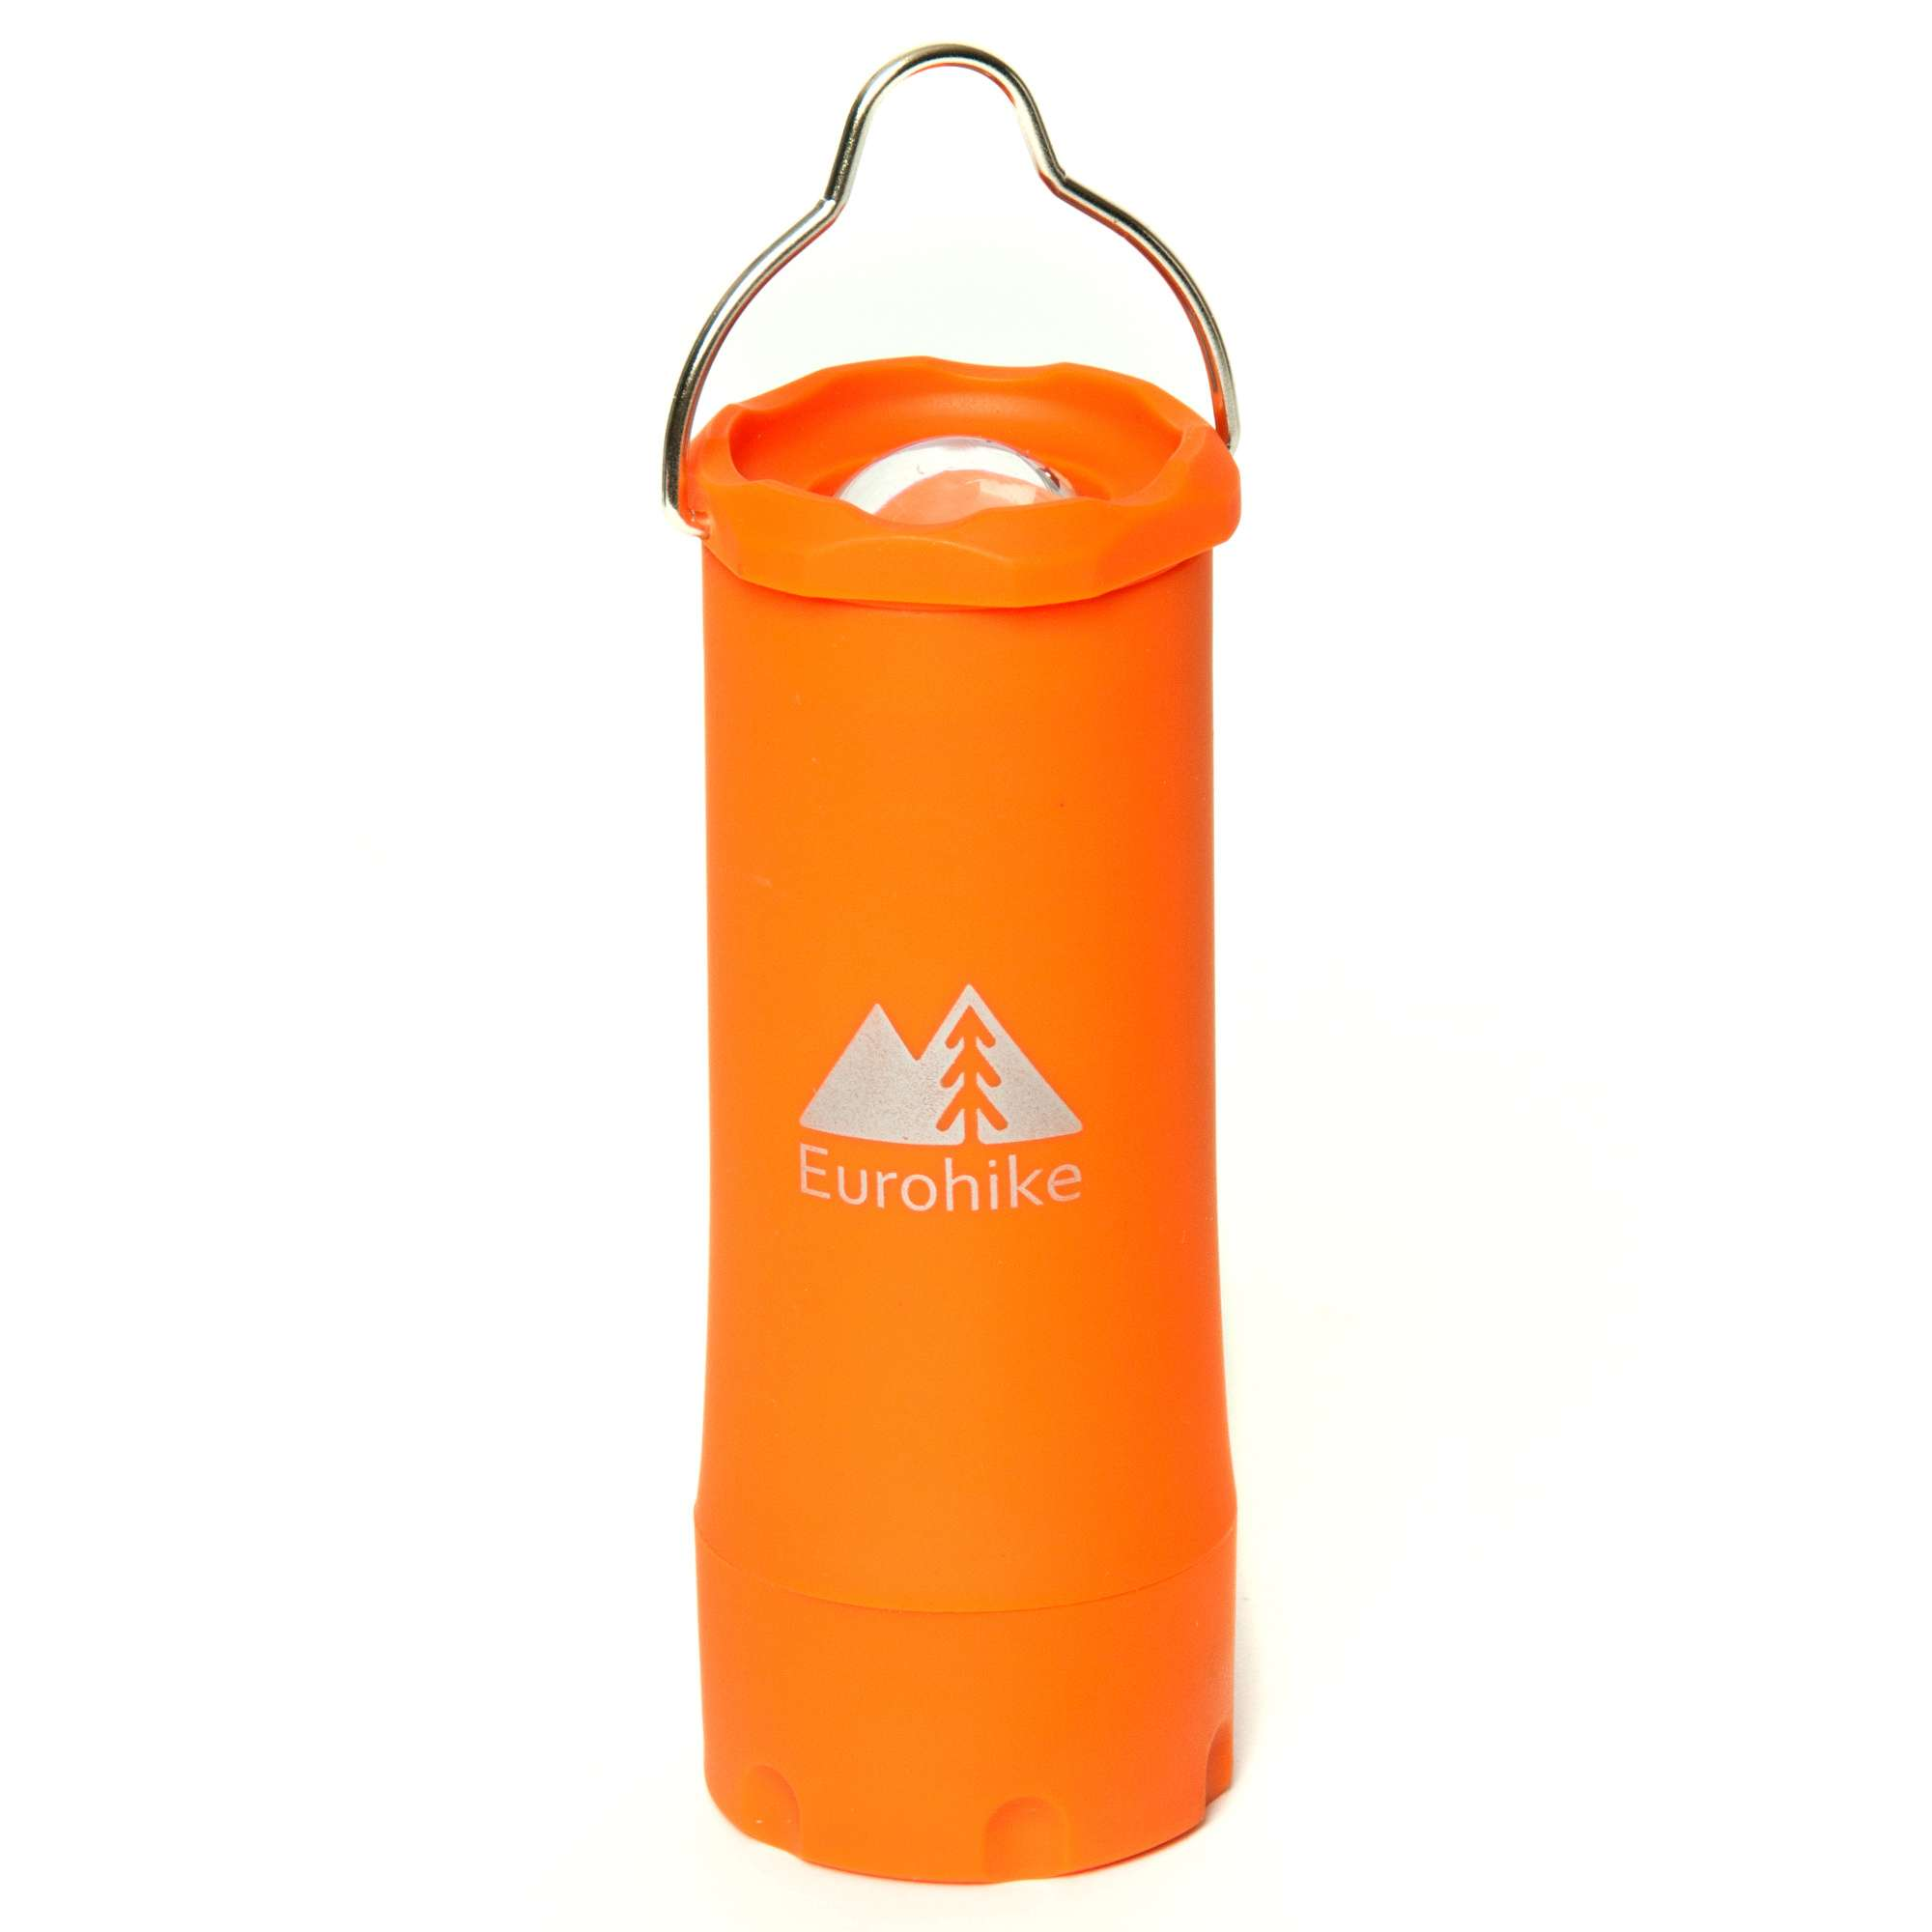 EUROHIKE Collapsible Lantern